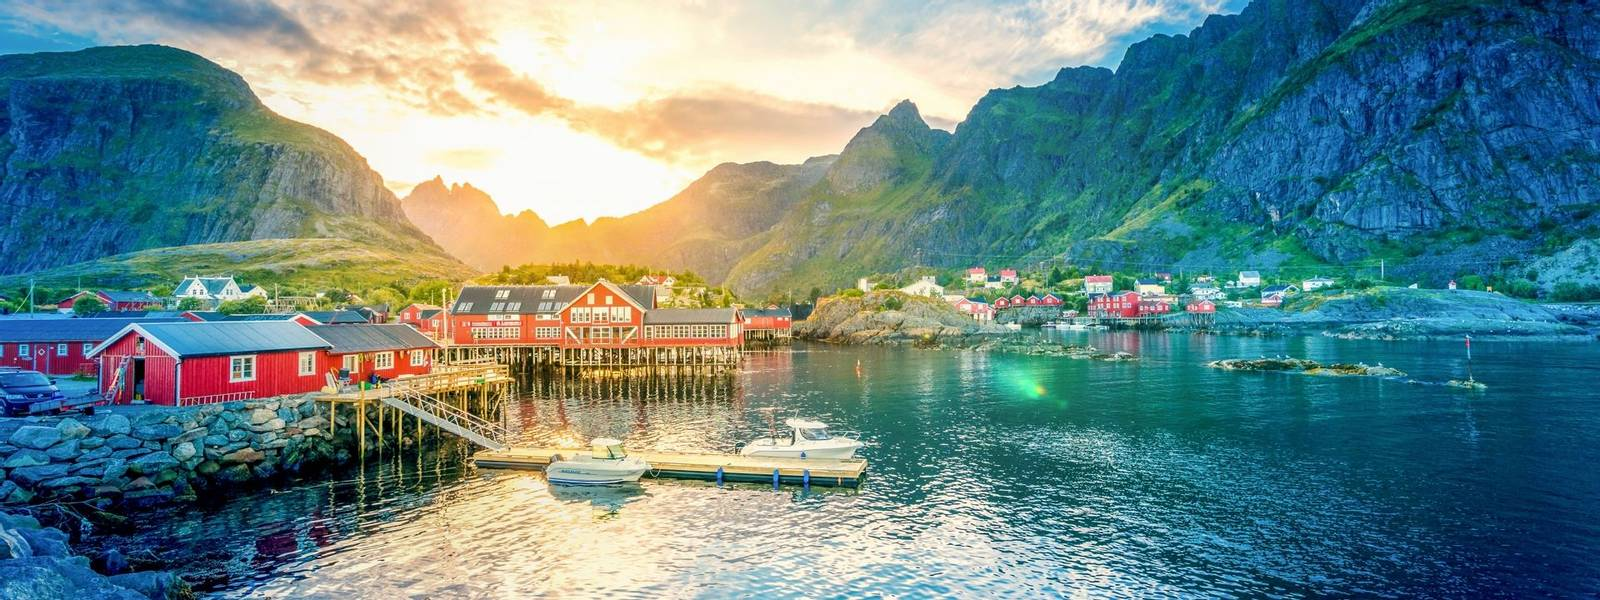 Norway-LofotenIslands-Svolvaer-AdobeStock_145295505.jpeg